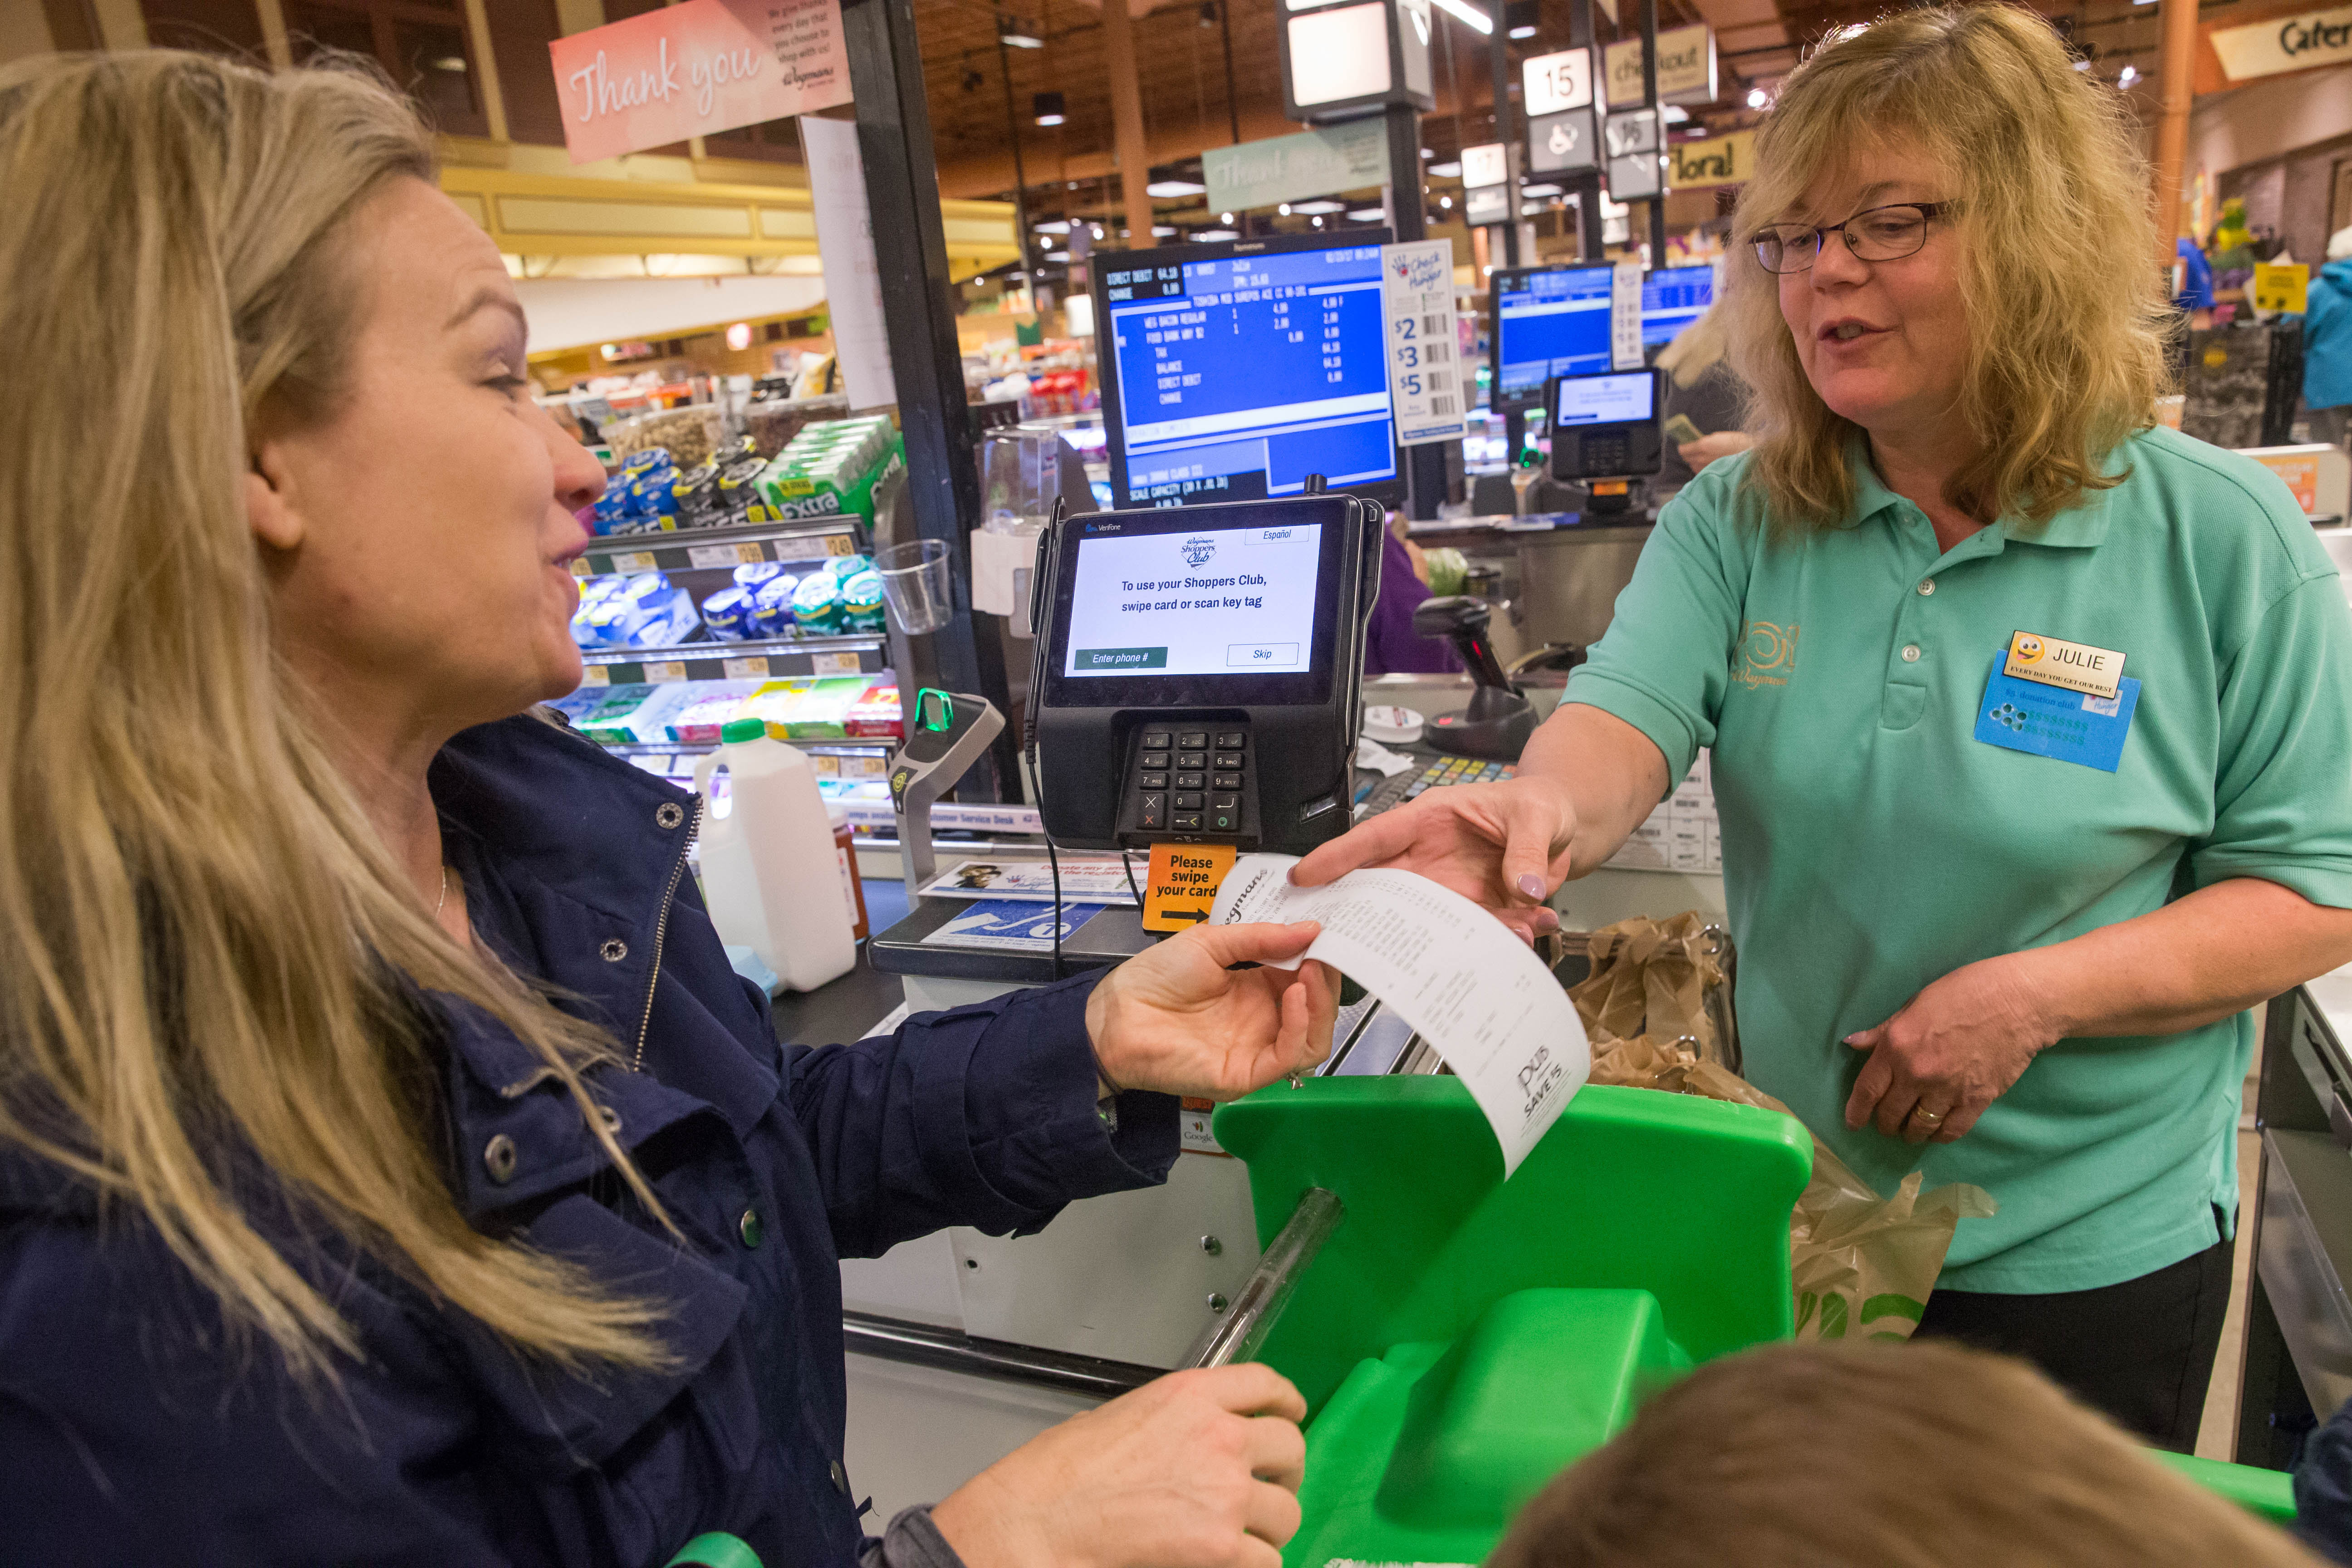 Nora Macnamee of Lewiston gets her receipt from cashier Julie Juzwicki while checking out at the Wegmans in Niagara Falls.  (Derek Gee/Buffalo News)